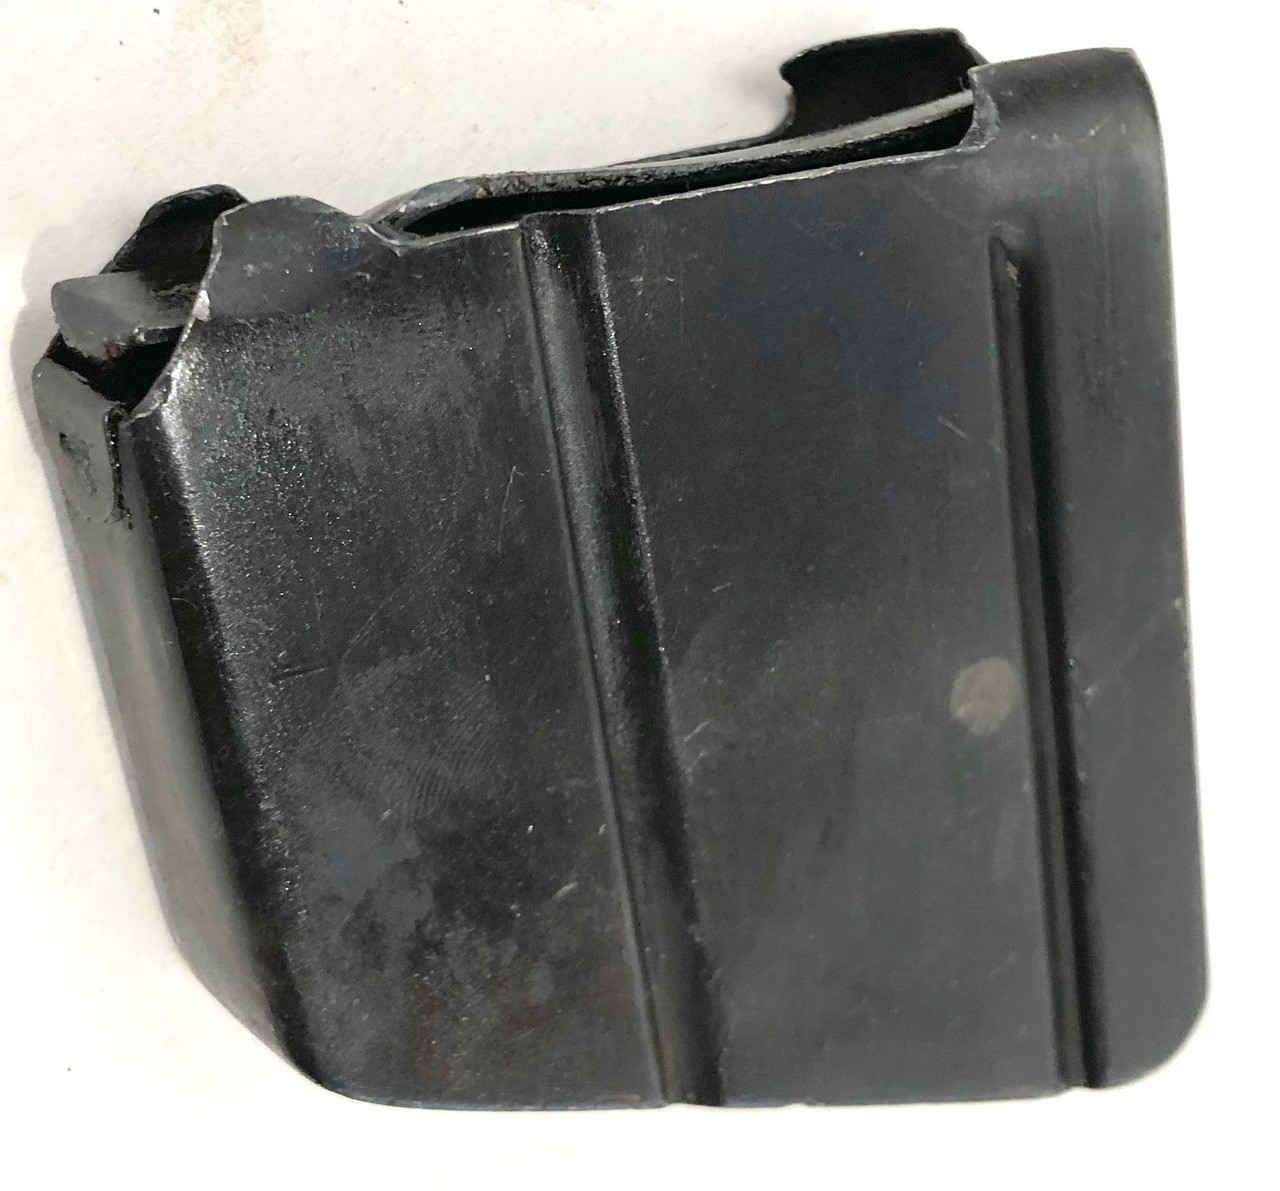 SMLE No. 1 Mk. 3 Magazine - Numbered - Very Good Condition